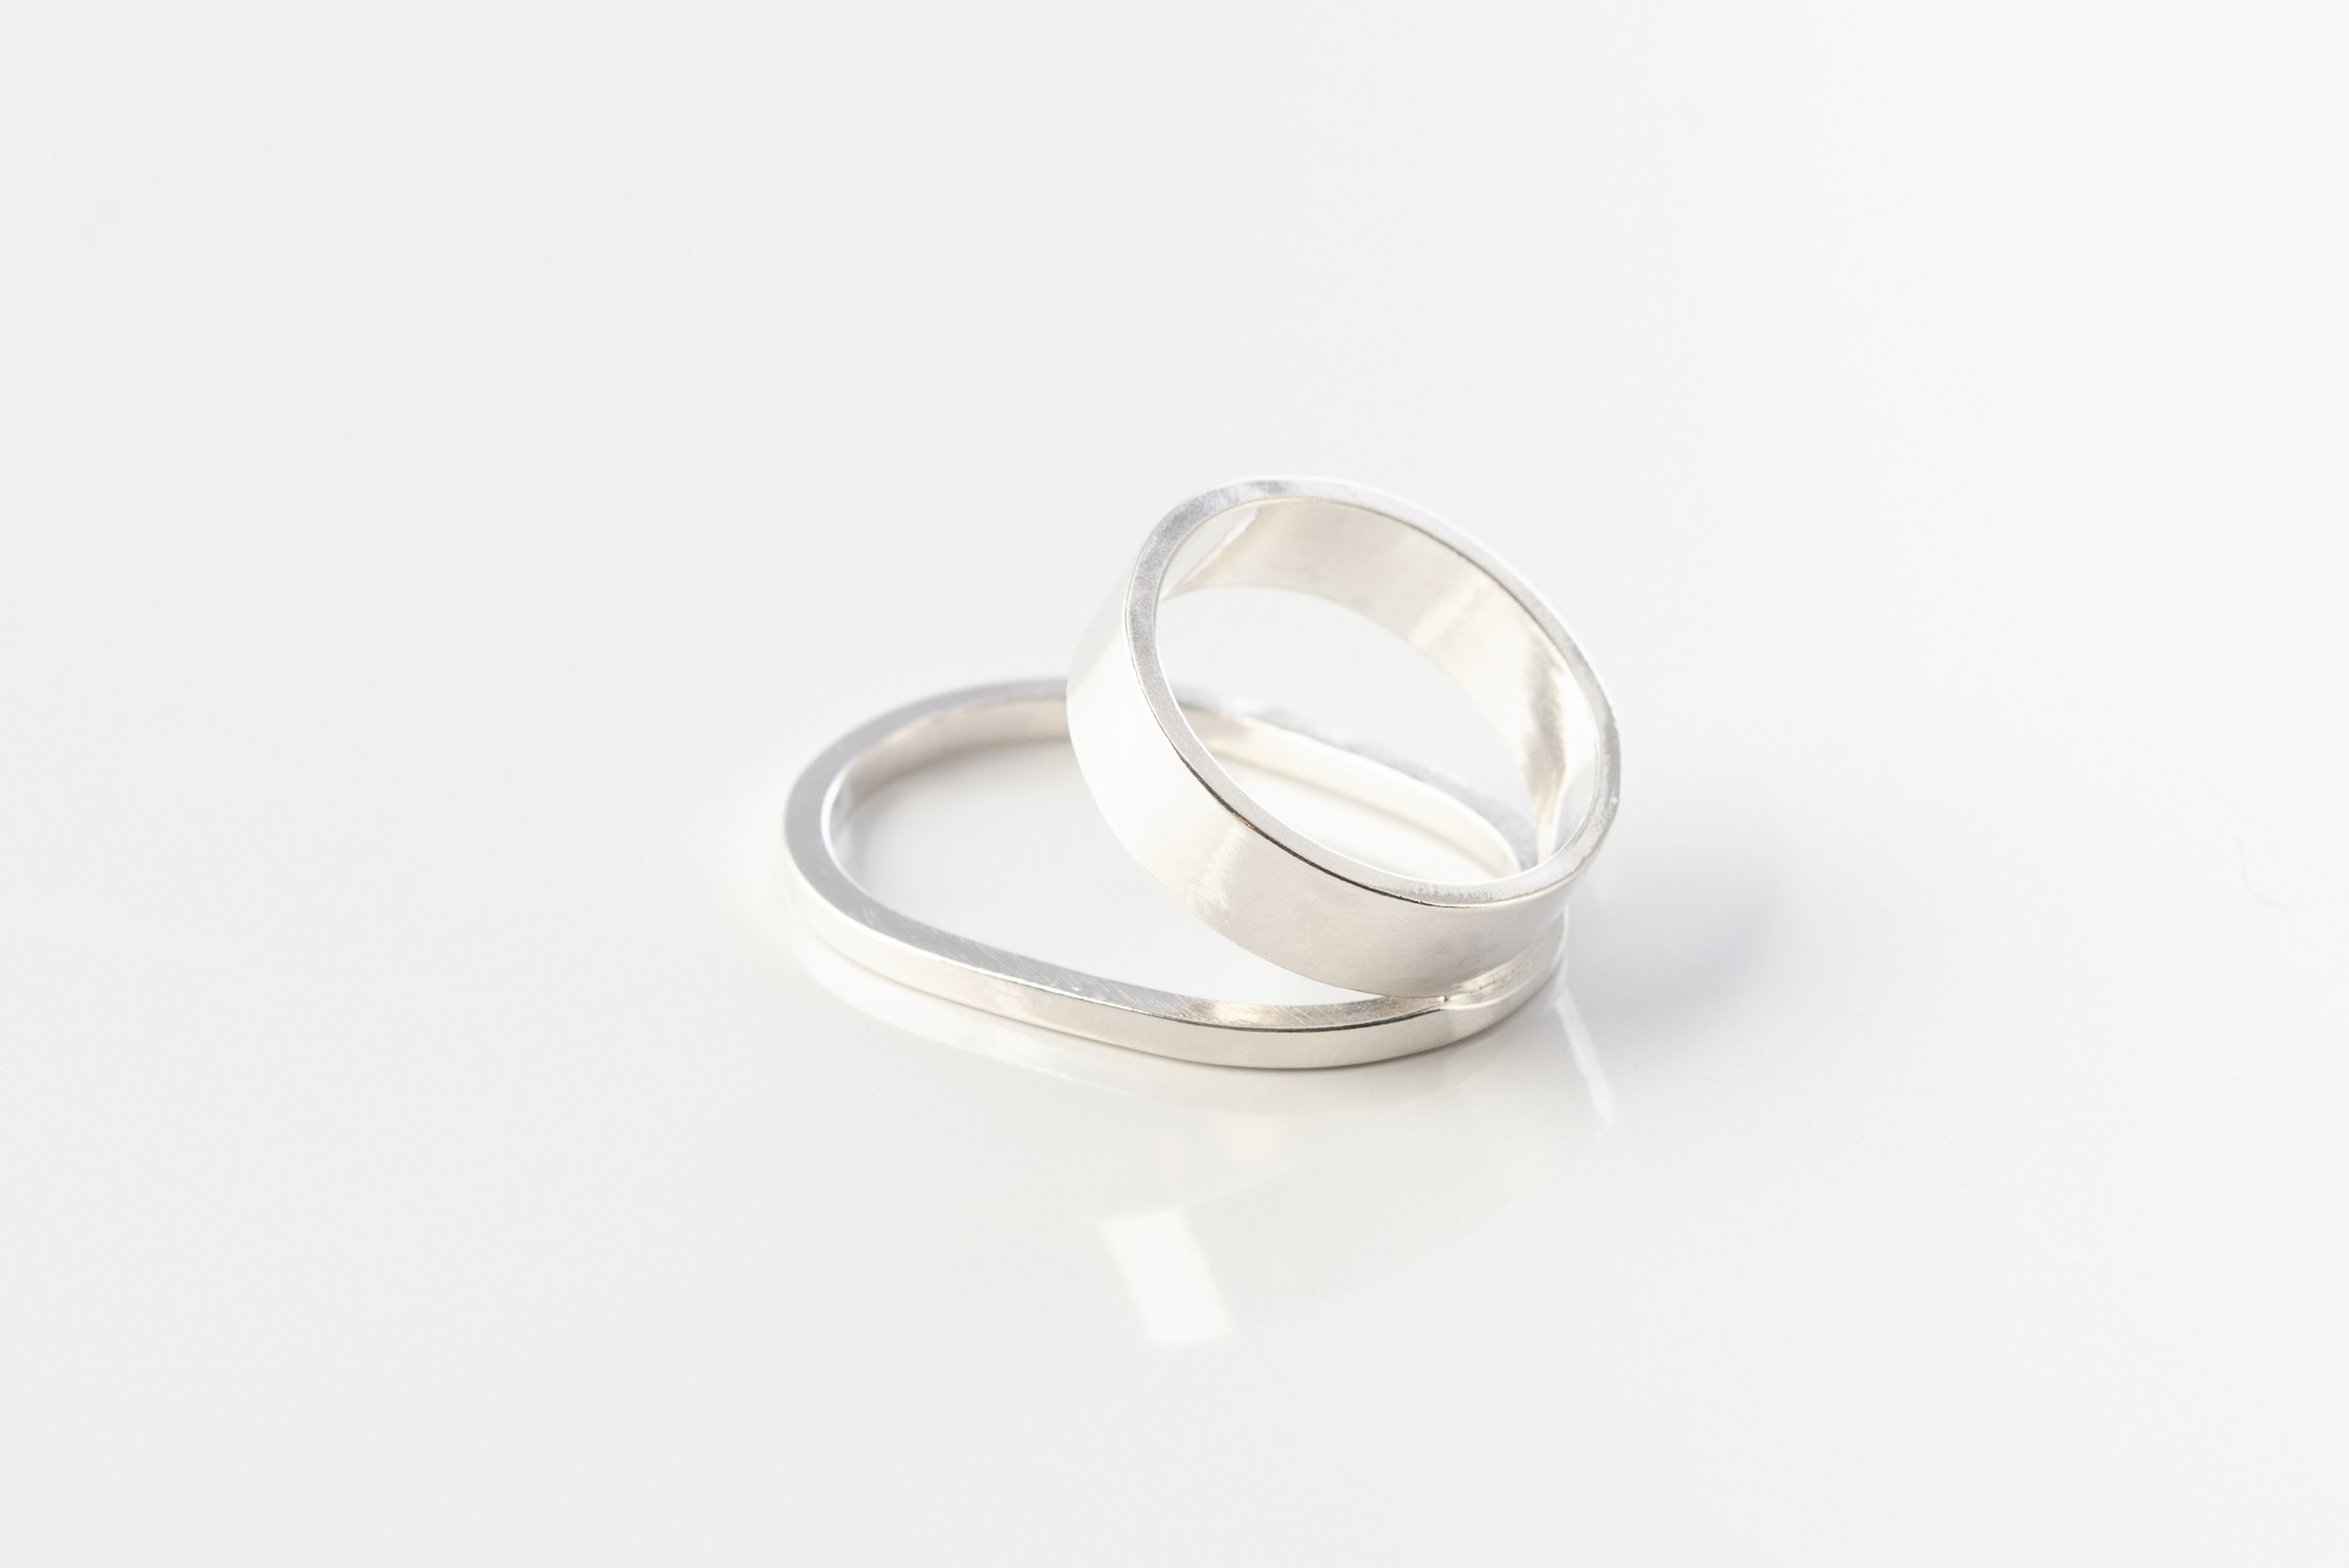 20_Ulterior_double band ring_8.jpg